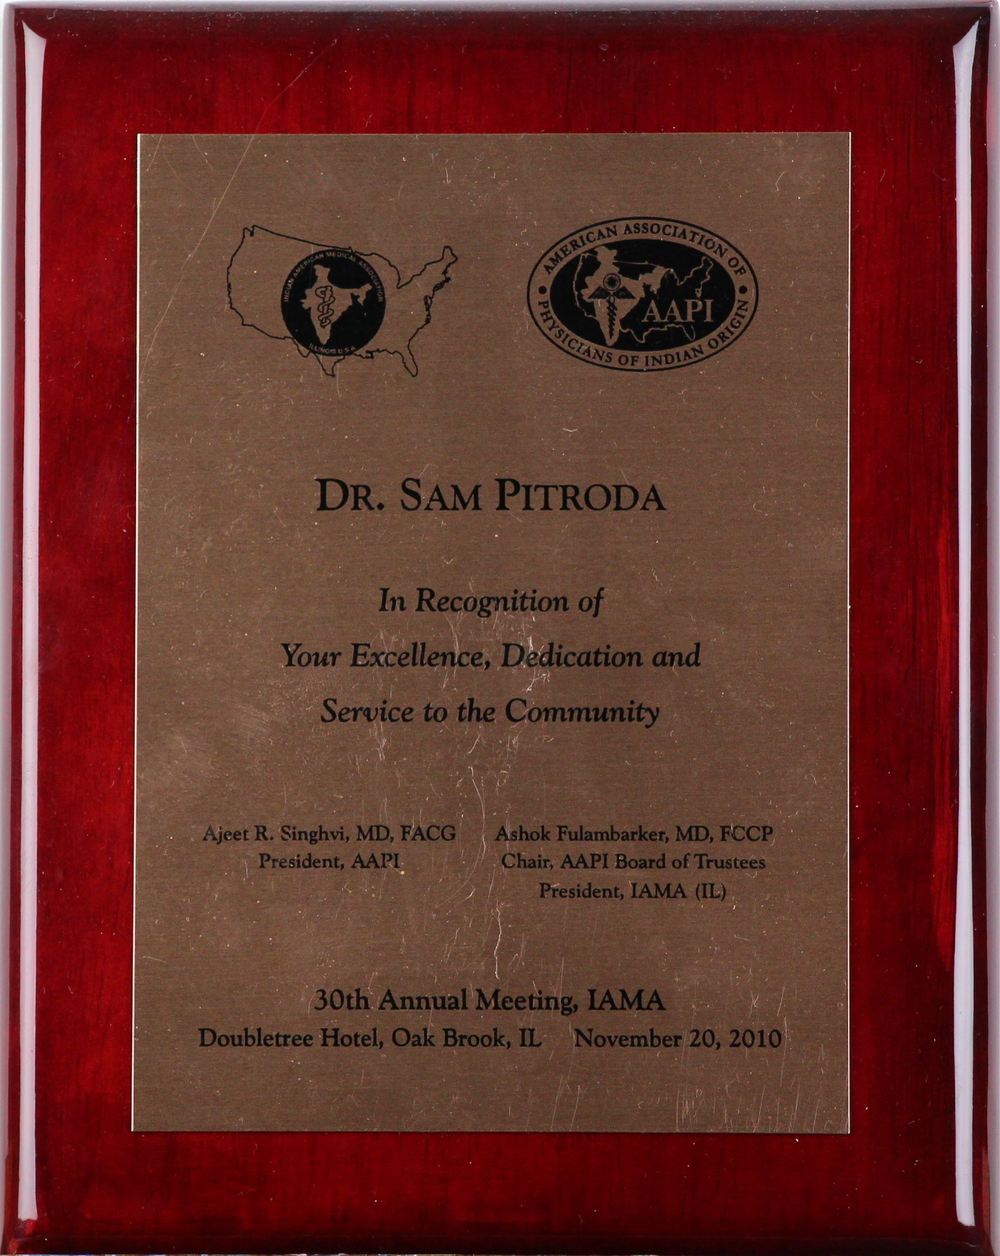 Special Recognition Award, 30th Annual Meething, IAMA, 2010